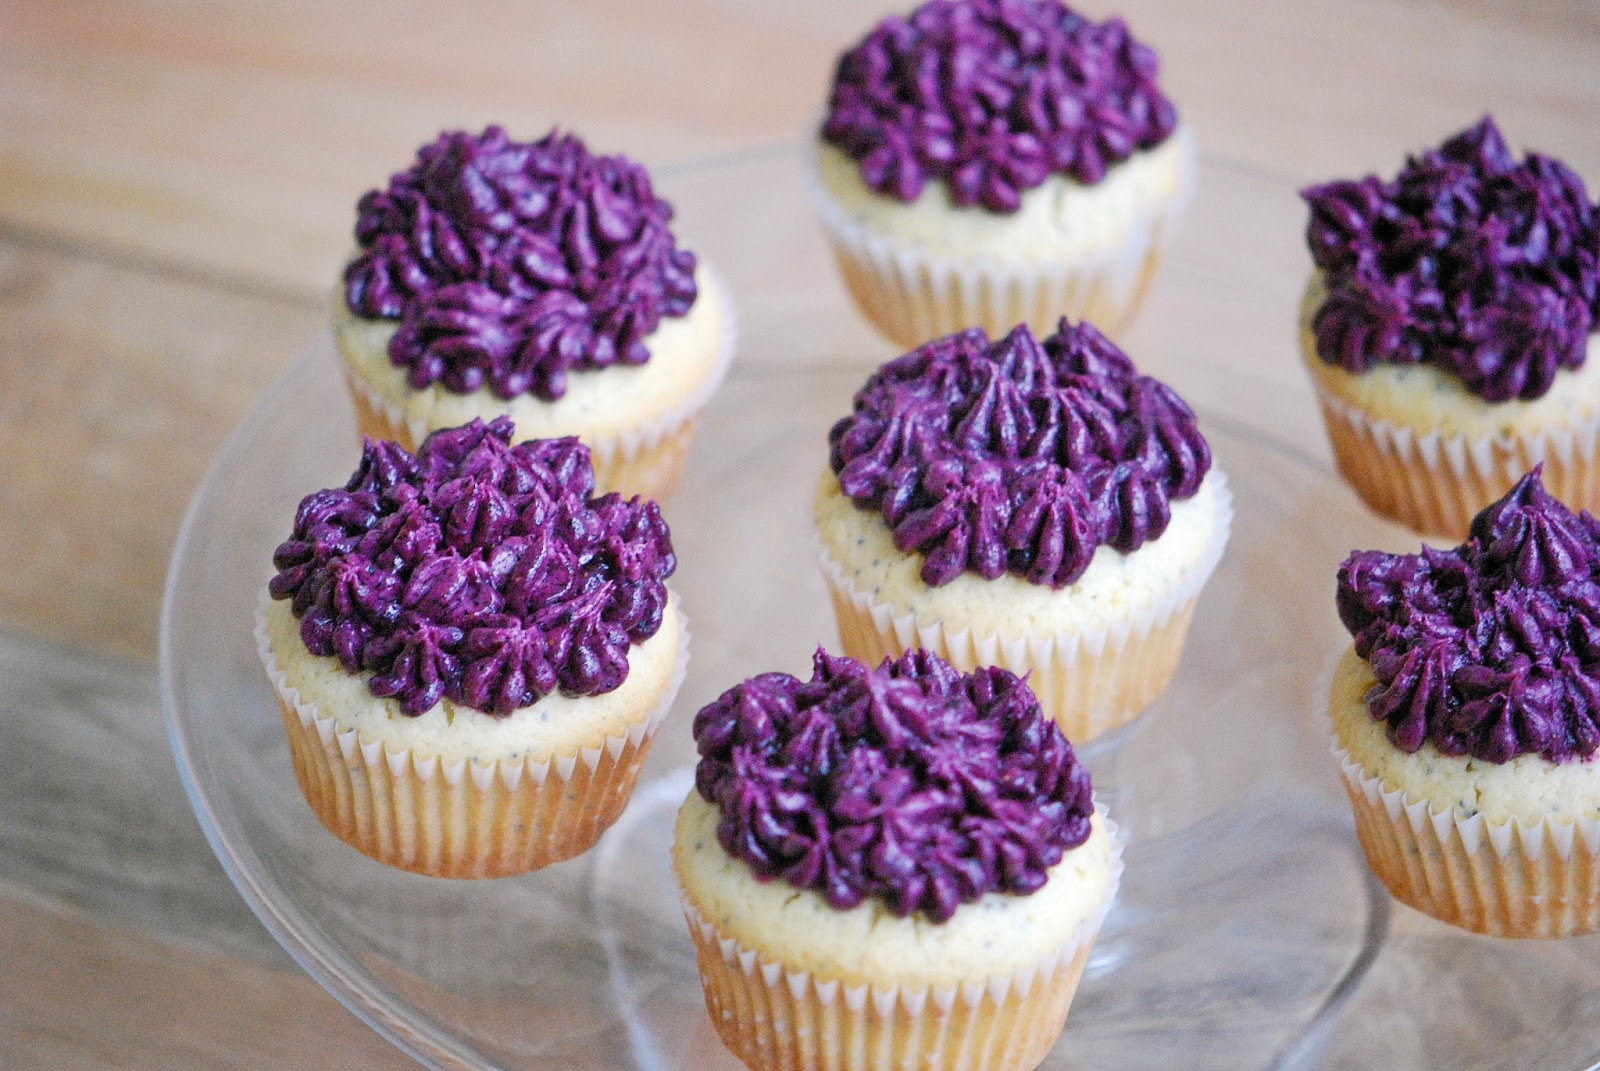 Mehan's Kitchen: Lemon Poppy Seed Cupcakes with Blueberry Frosting